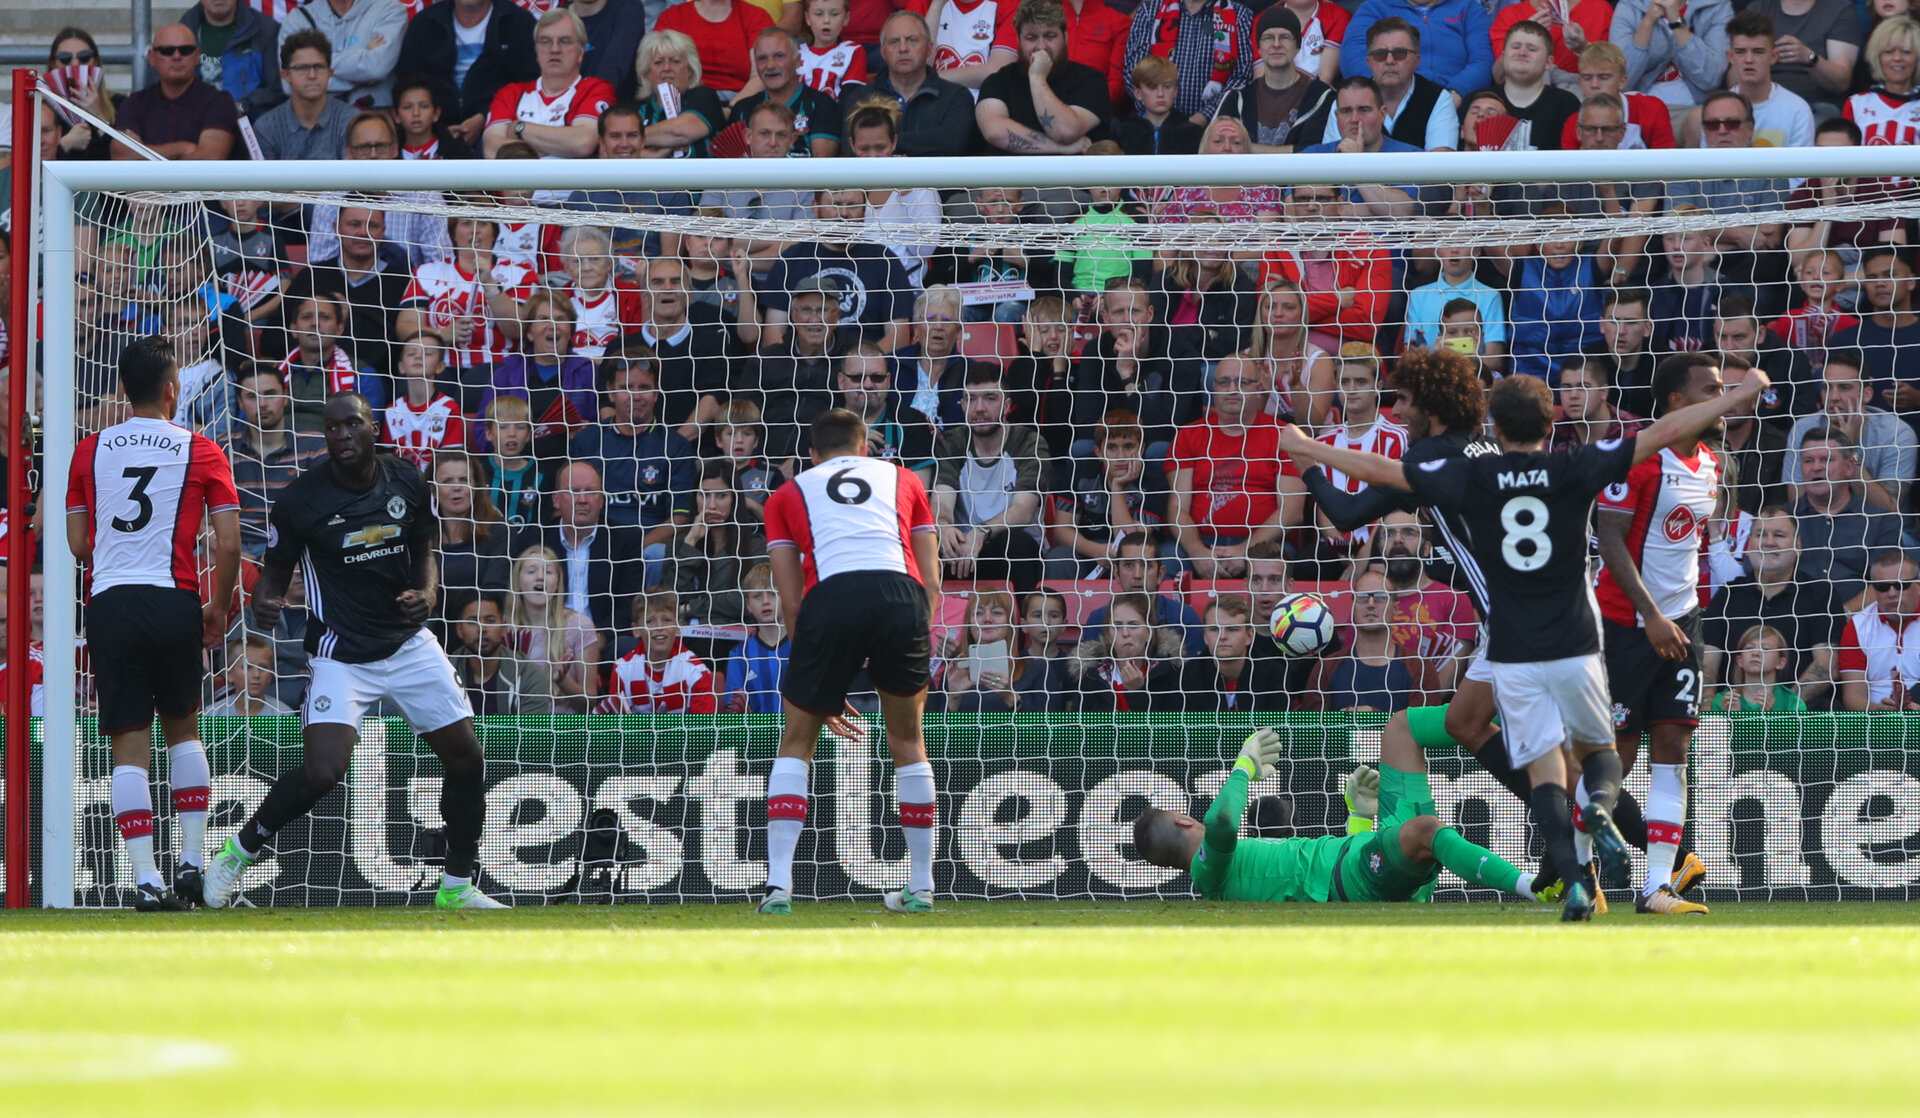 SOUTHAMPTON, ENGLAND - SEPTEMBER 23: Romelu Lukaku of Manchester United scores the opening goal during the Premier League match between Southampton and Manchester United at St Mary's Stadium on September 23, 2017 in Southampton, England. (Photo by Matt Watson/Southampton FC via Getty Images)